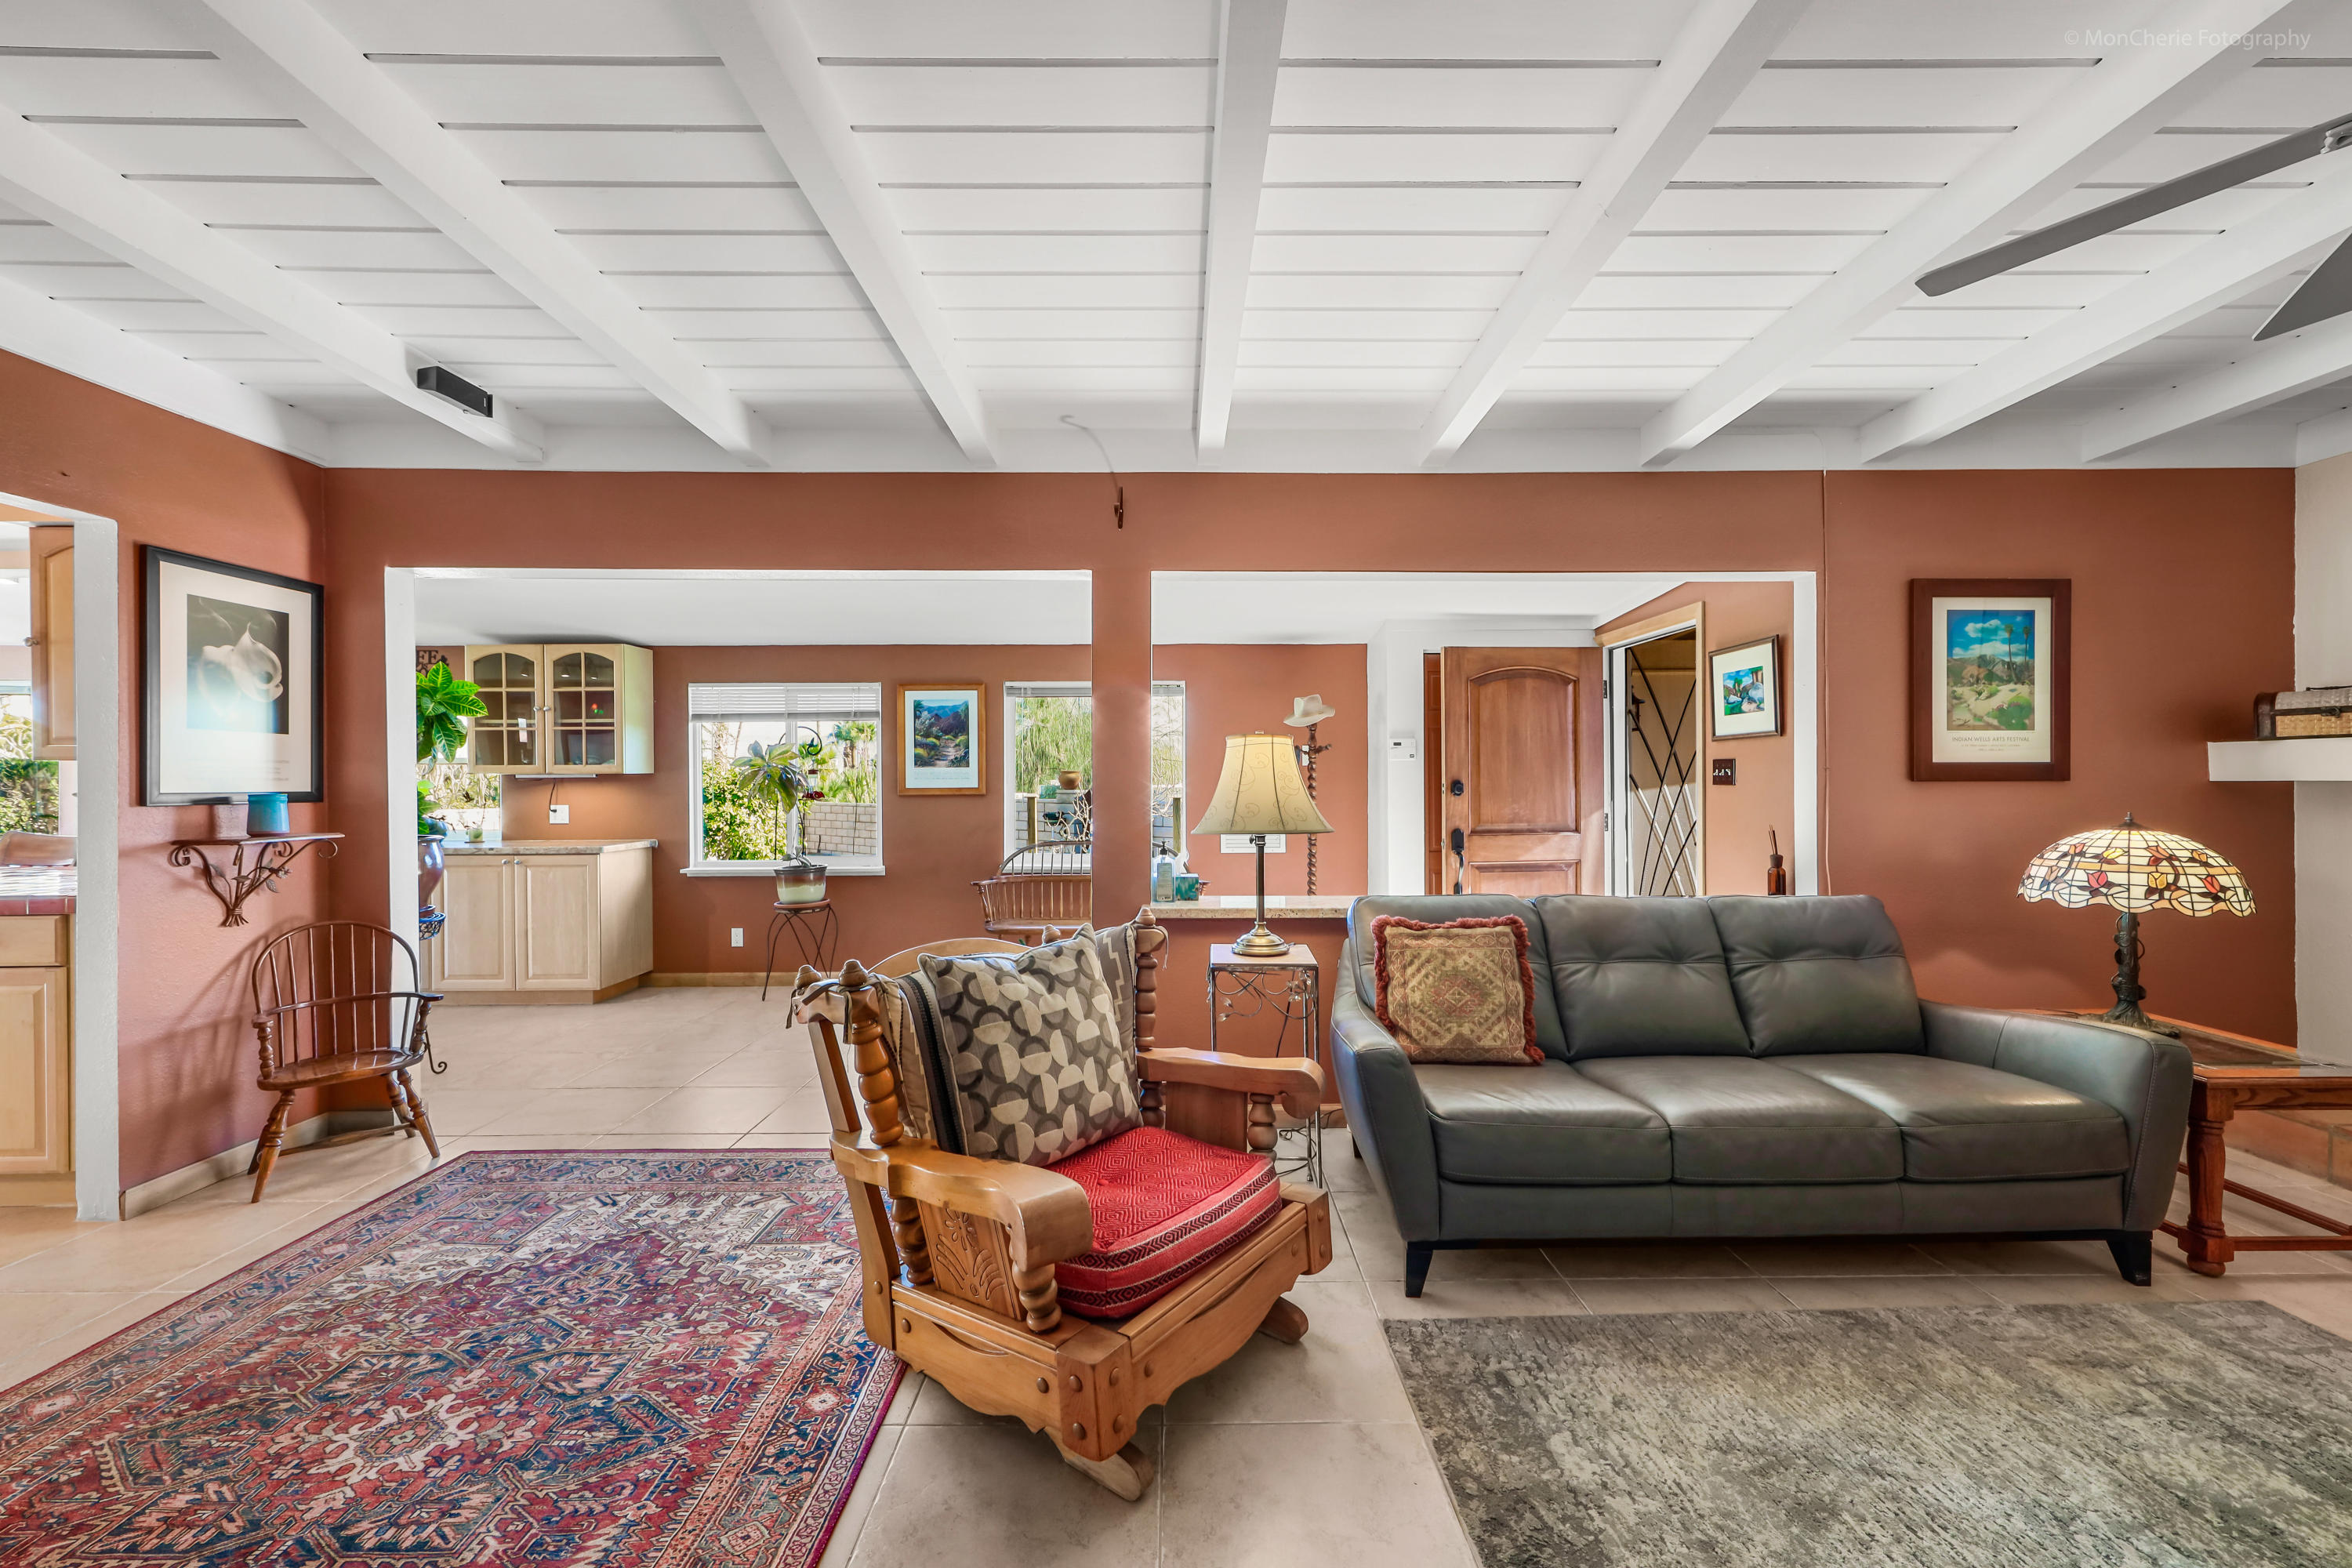 This tranquil and peaceful oasis in Cathedral Cove offers an expansive yard with pool/spa, covered patio and deck,  an abundance of desert foliage and flowering trees and is gated and private.  The living room has a wonderful fireplace for cozy winter nights.   There are two bedrooms and two bathrooms,  an office  and separate laundry room. The master bedroom has a large walk in closet.  The laundry room also serves as a pantry with a second refrigerator.  Solar power is owned thus keeping the cost of utilities to a minimum.  The exterior of the home was just painted and new carpeting in the bedrooms and office.  This truly is a special property that has been well maintained by the owners.